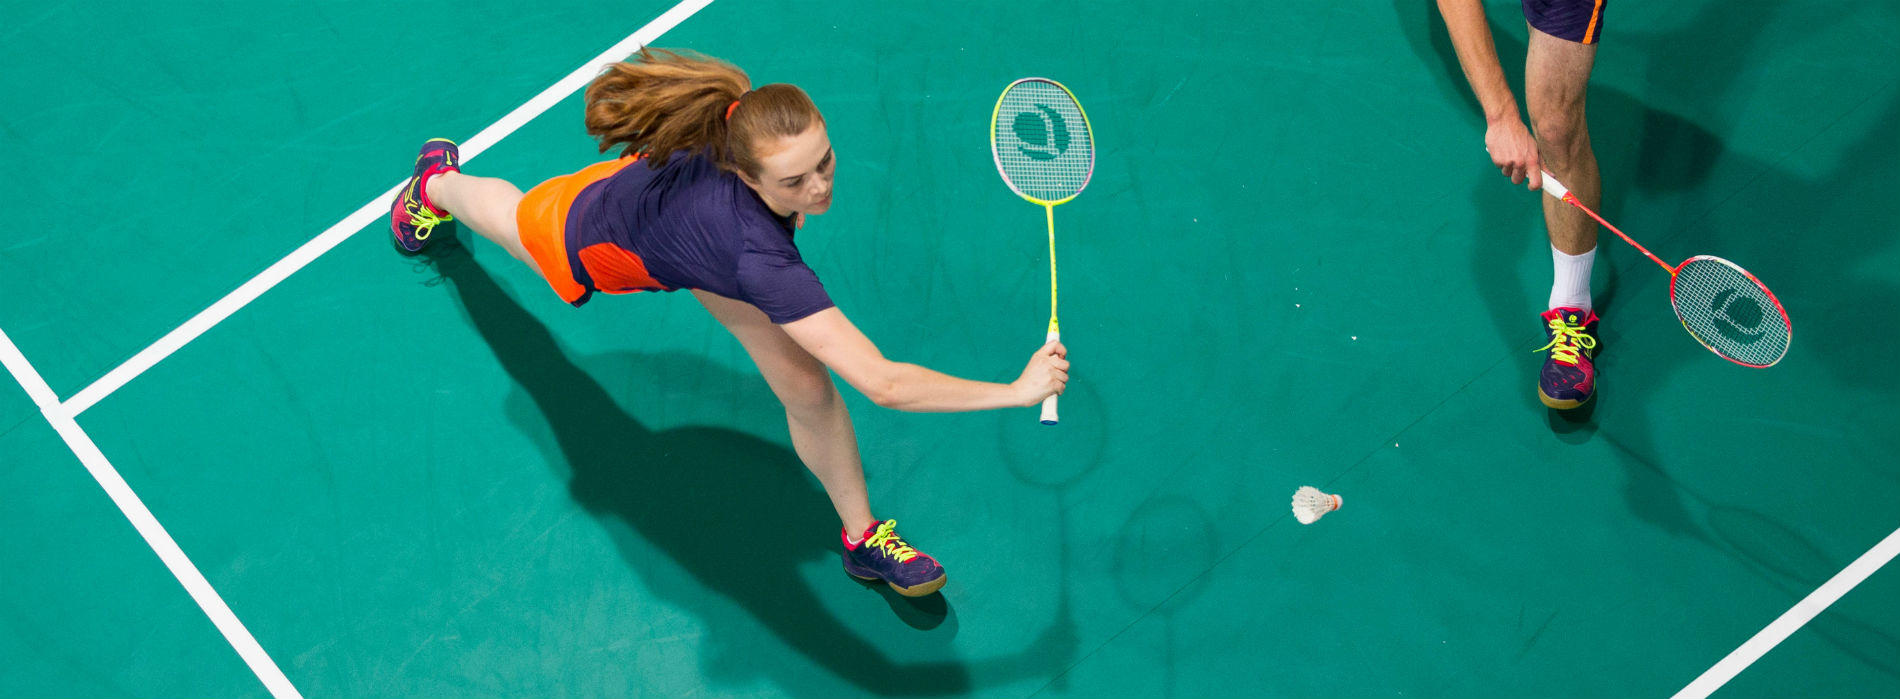 Badminton Shoes: Tips For Choosing The Right Pair Of Shoes